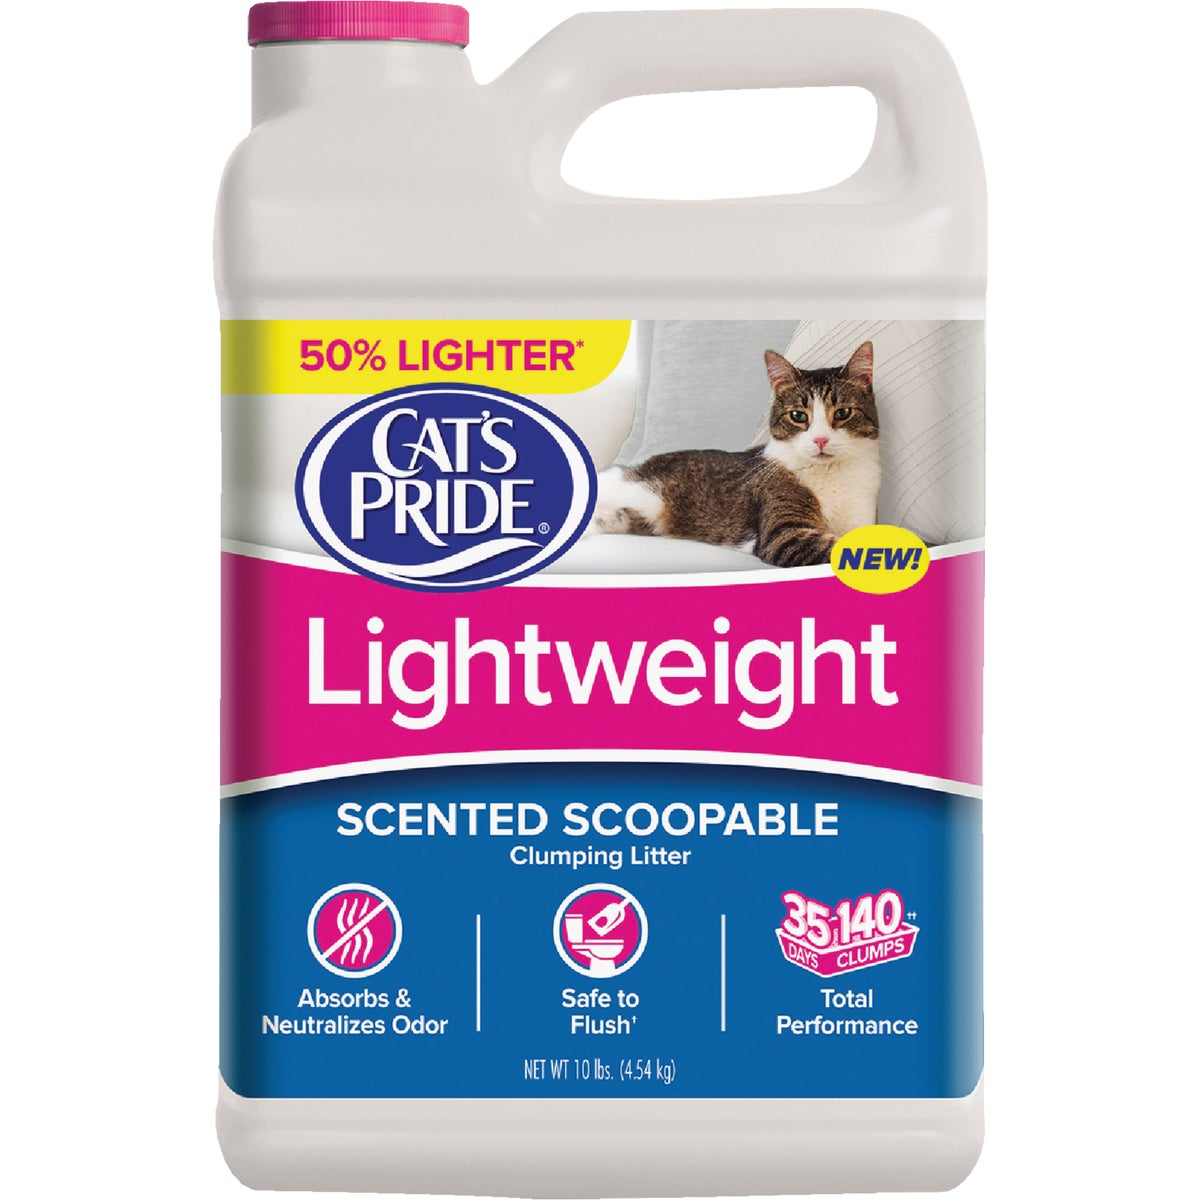 14LB SCOOPABLE LITTER - C01934-G40 by Oil Dri Corp